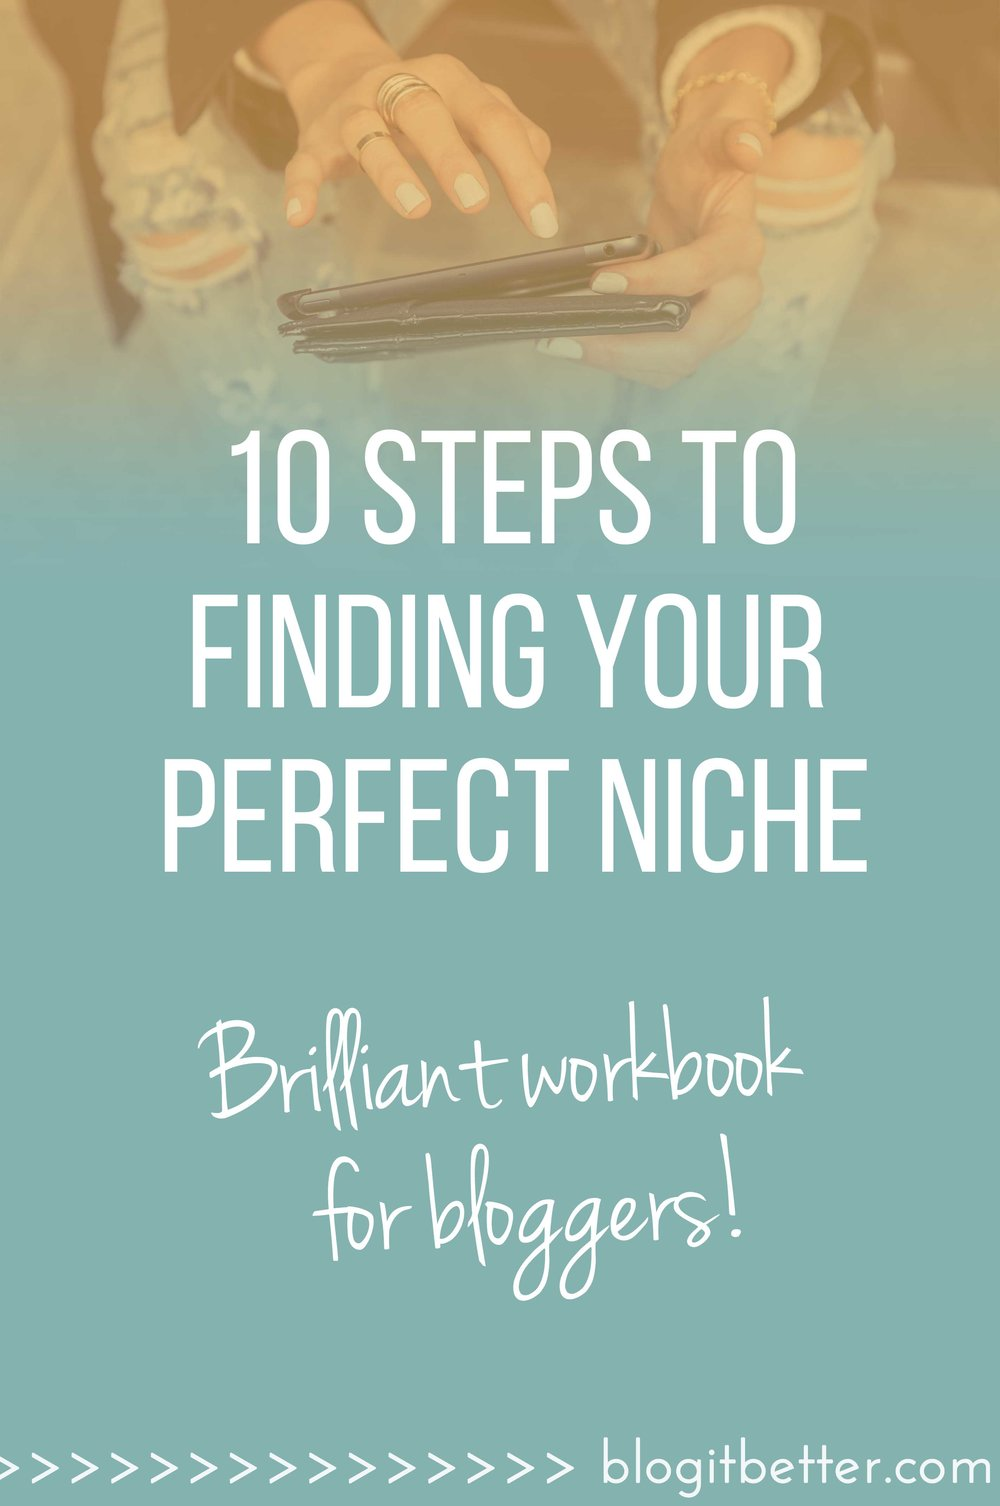 Become a better blogger! This super useful and handy workbook takes you through 10 simple and effective steps to identifying YOUR perfect blogging niche.